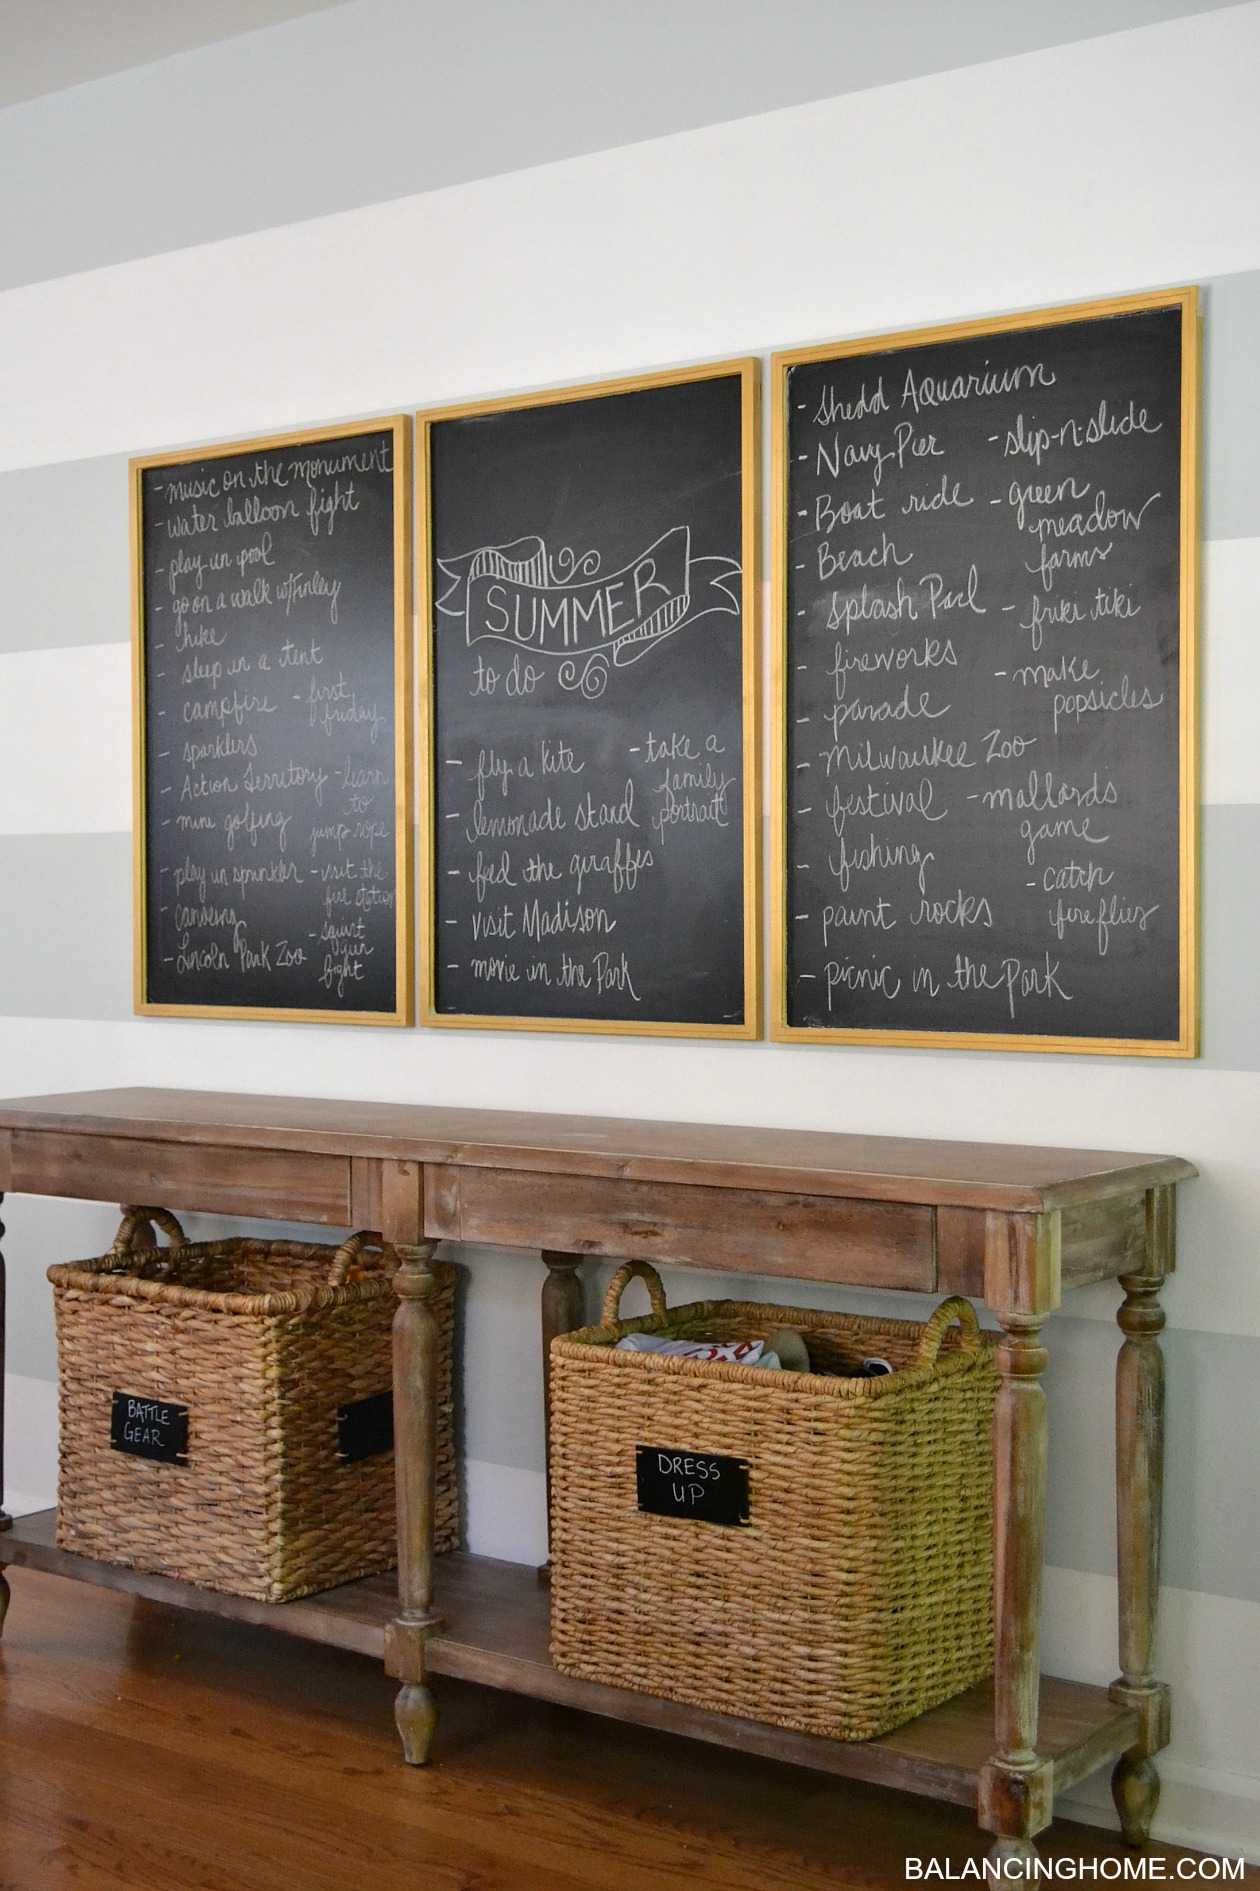 DINING ROOM CHALKBOARD SUMMER